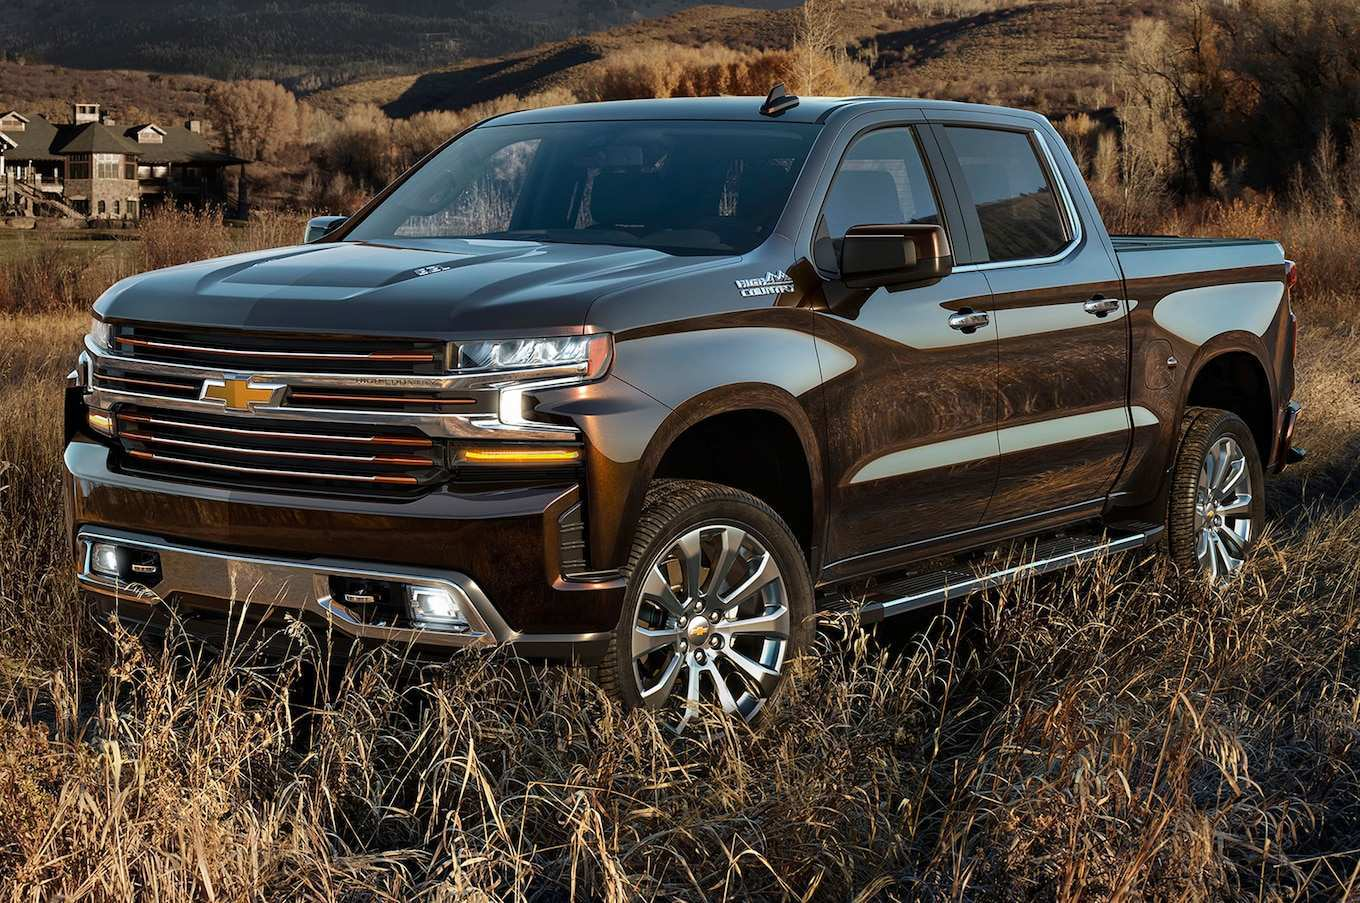 86 All New 2019 Chevrolet Silverado Concept And Review